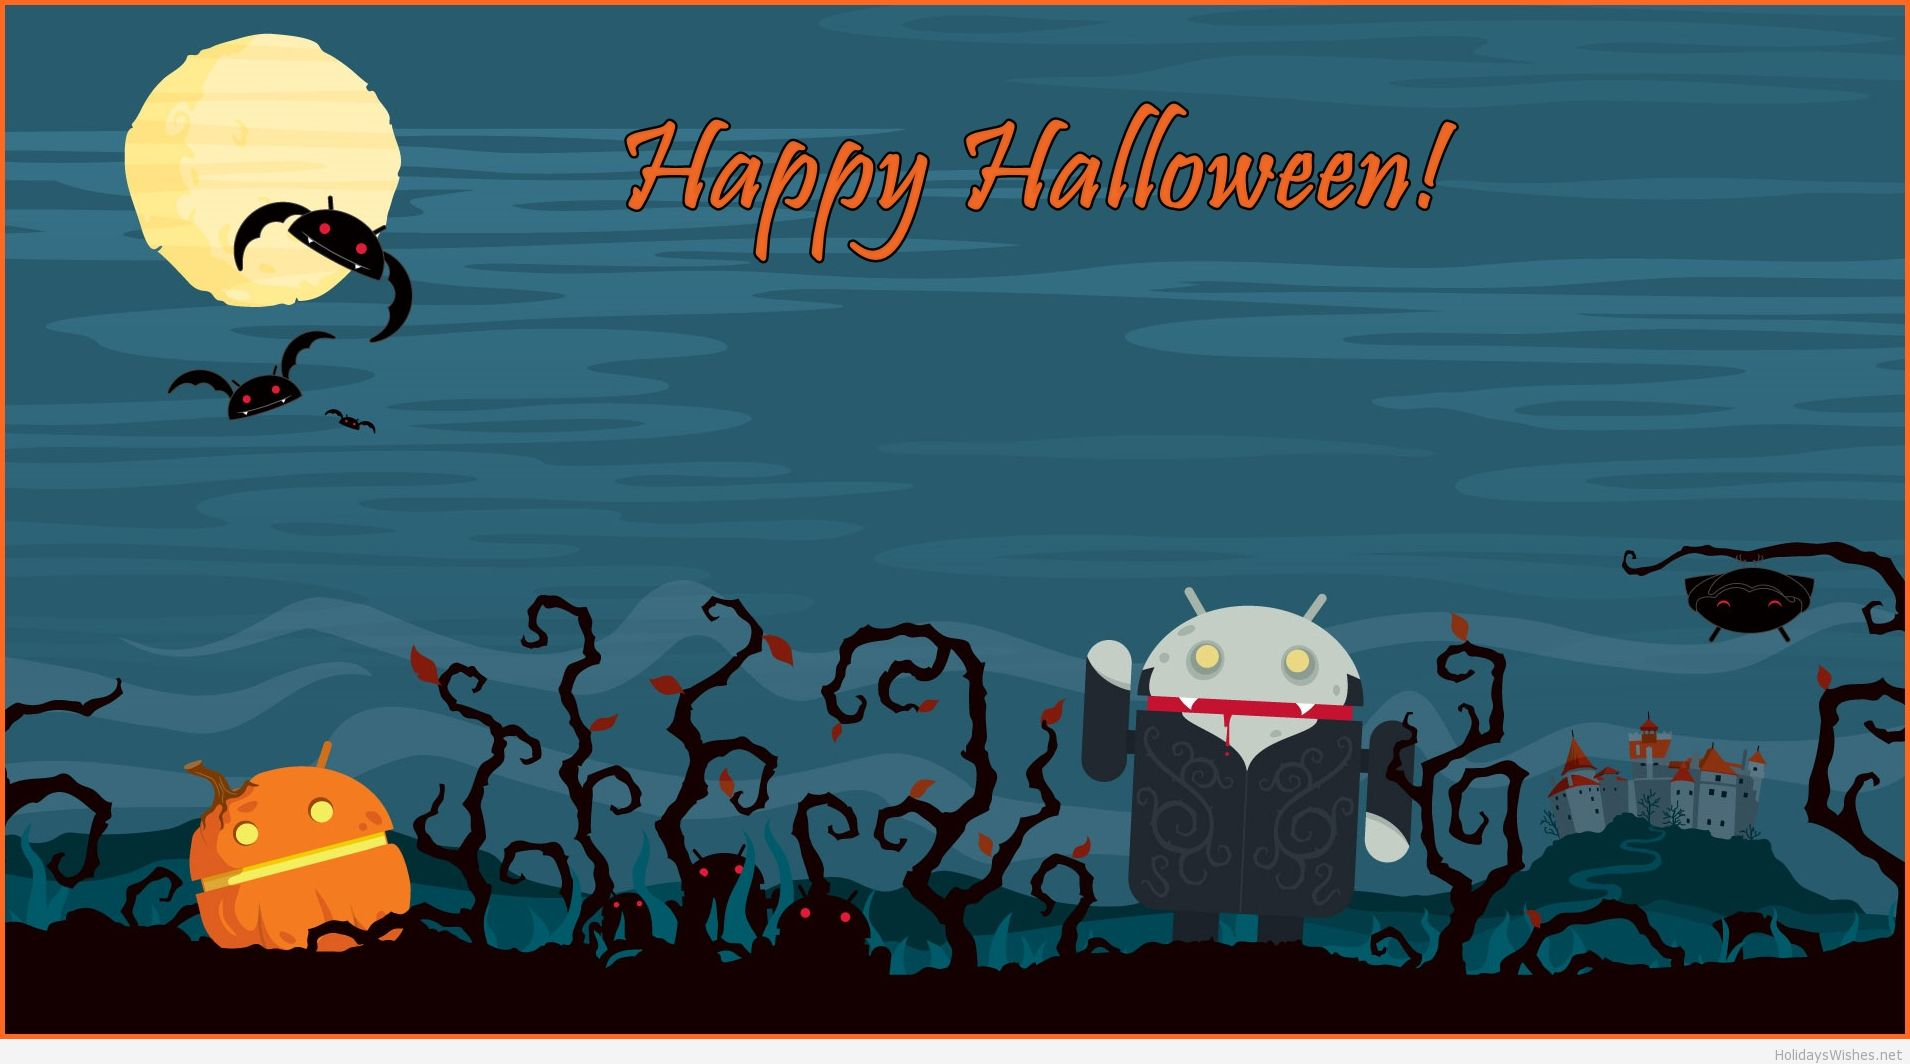 Happy-Halloween-scary-image